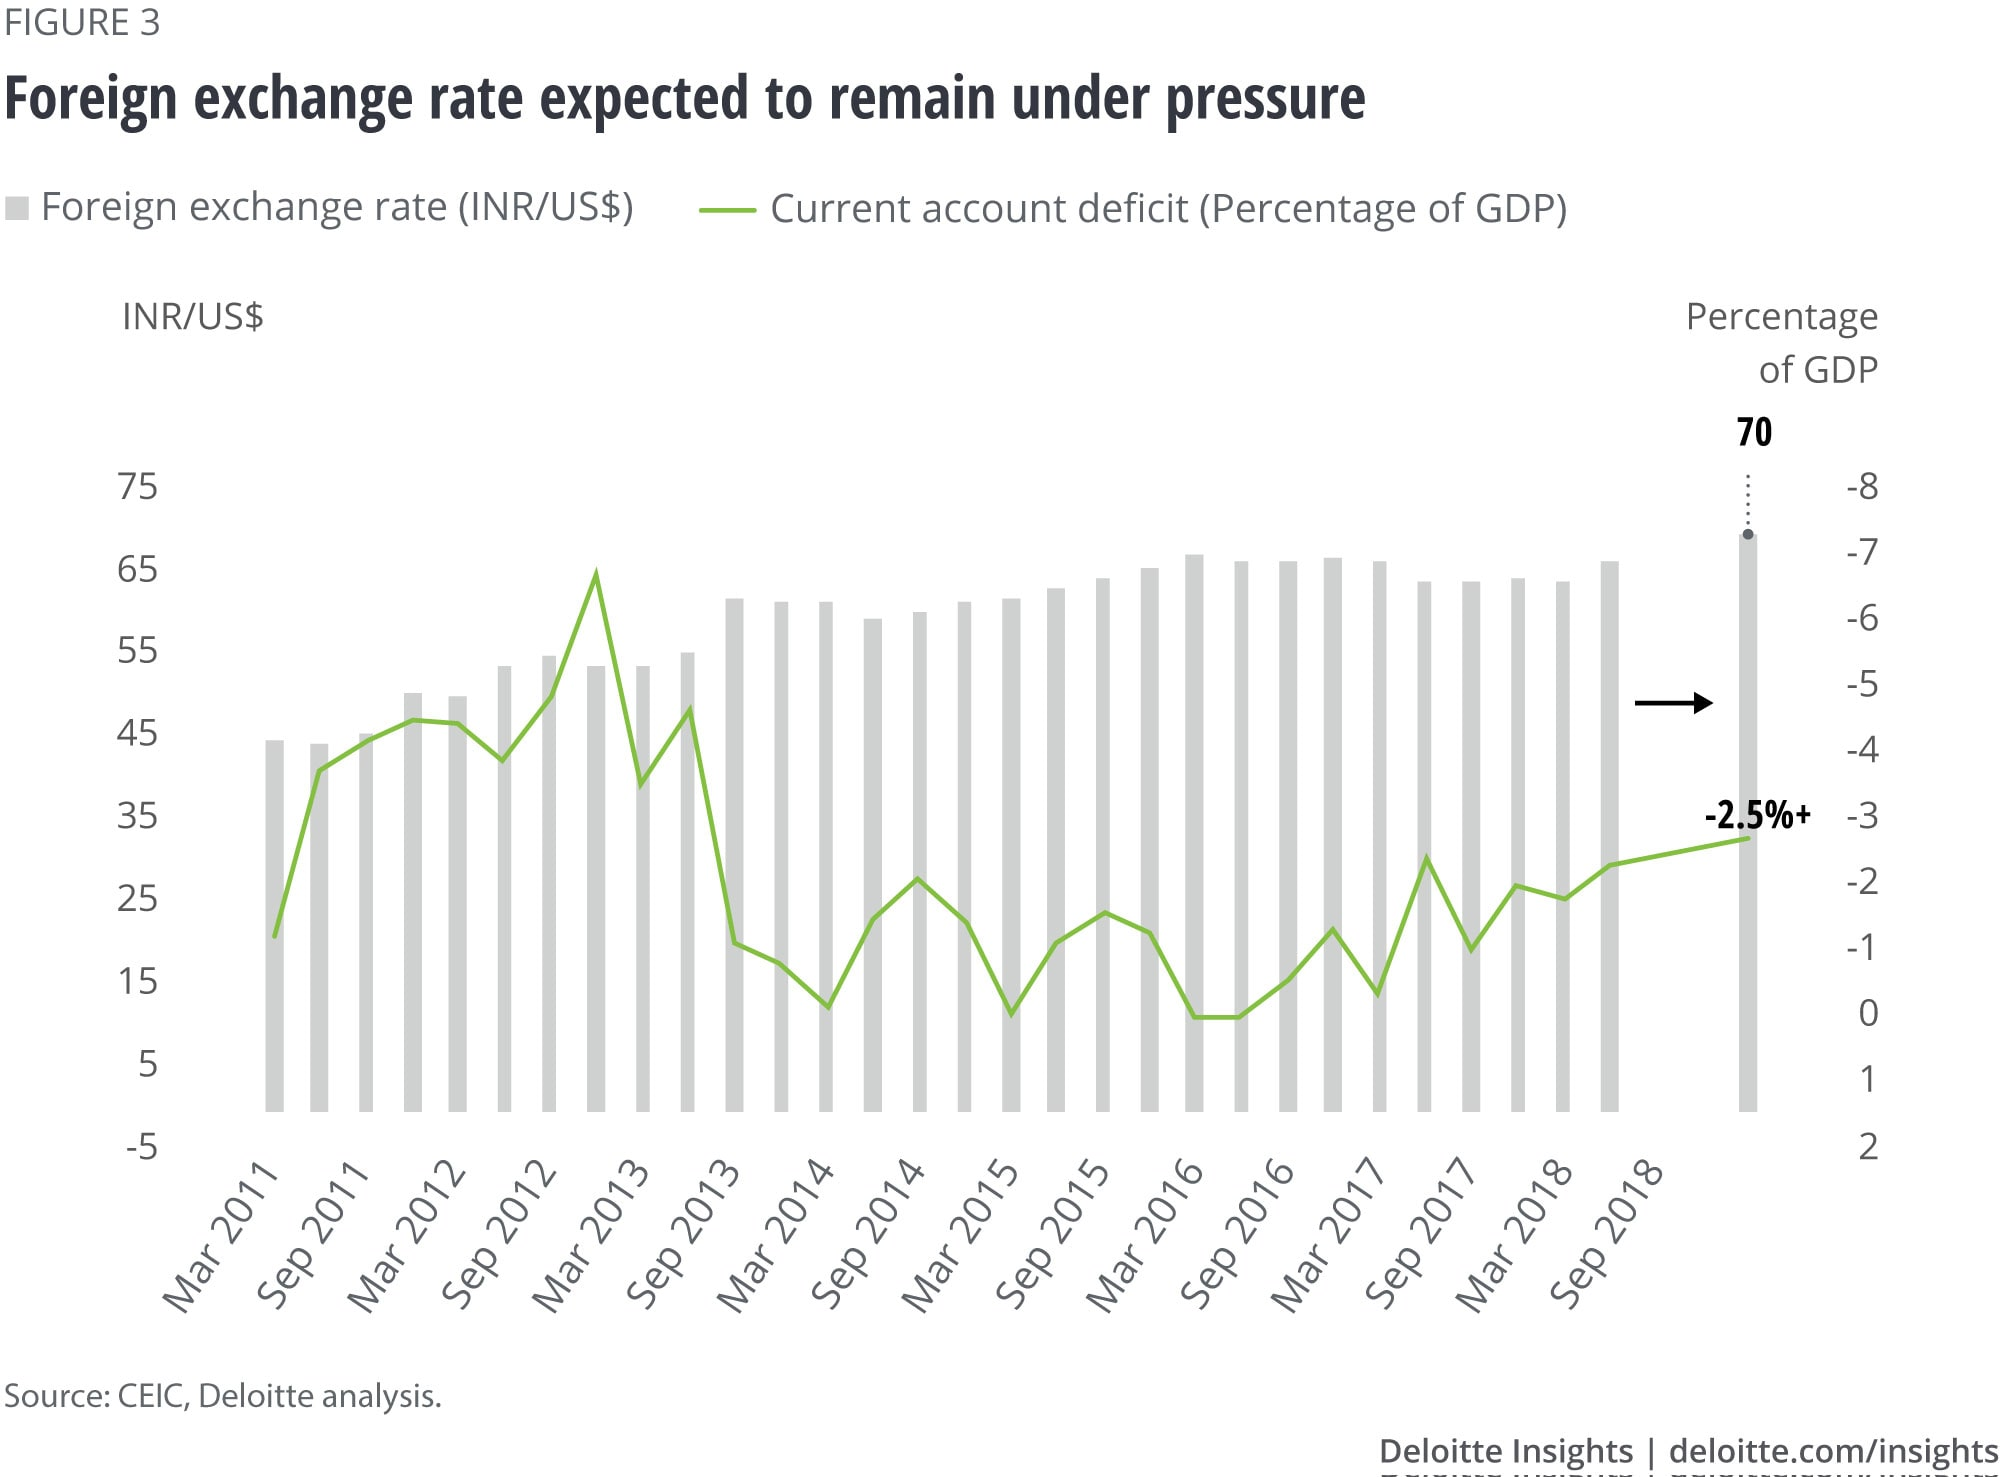 Foreign exchange rate expected to remain under pressure